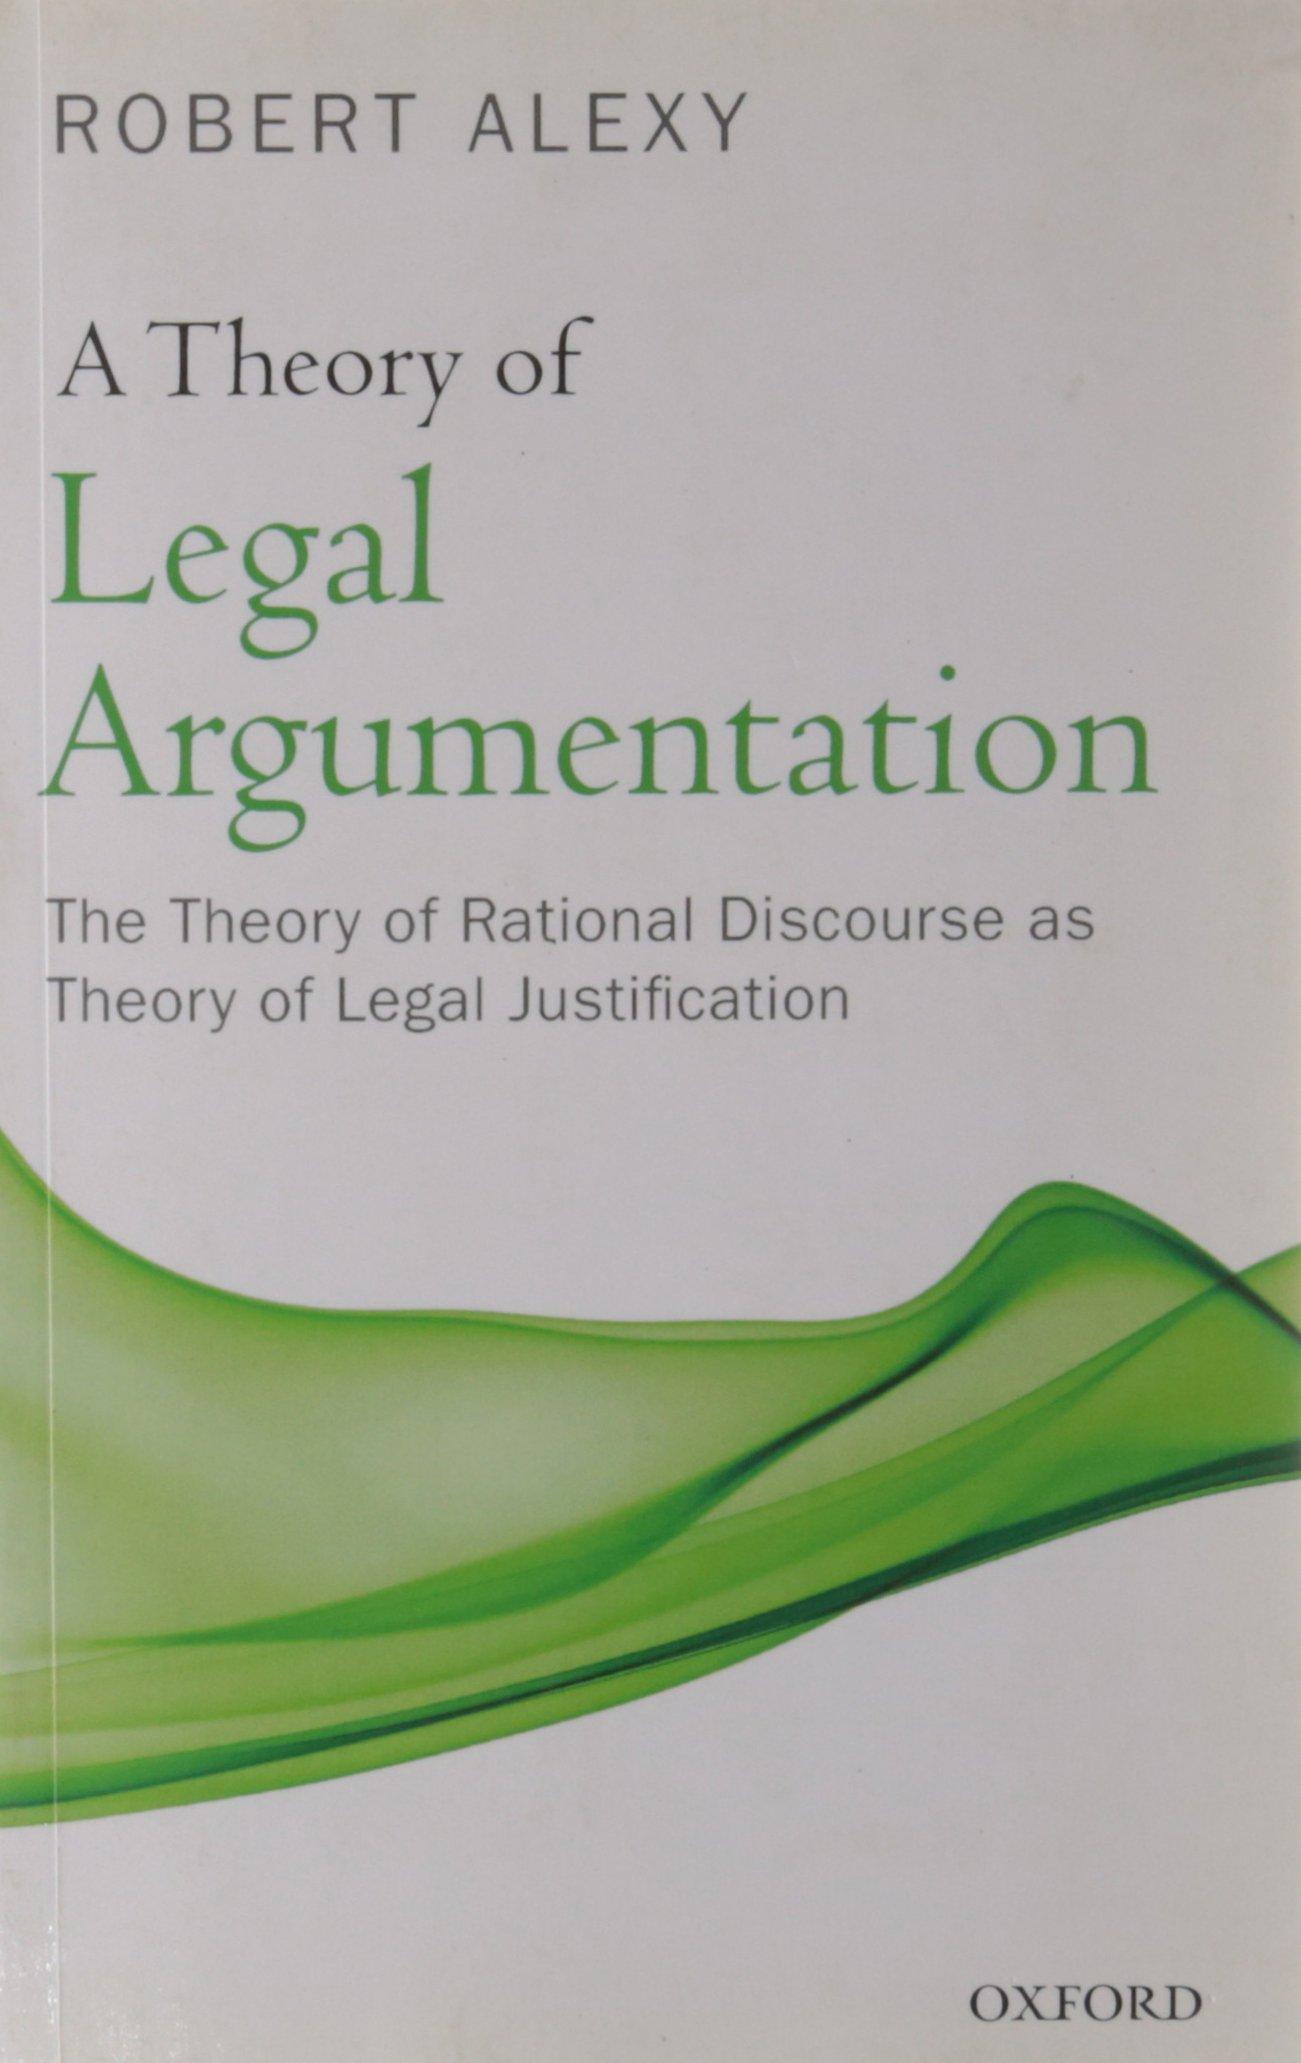 A Theory of Legal Argumentation: The Theory of Rational Discourse as Theory of Legal Justification by Oxford University Press